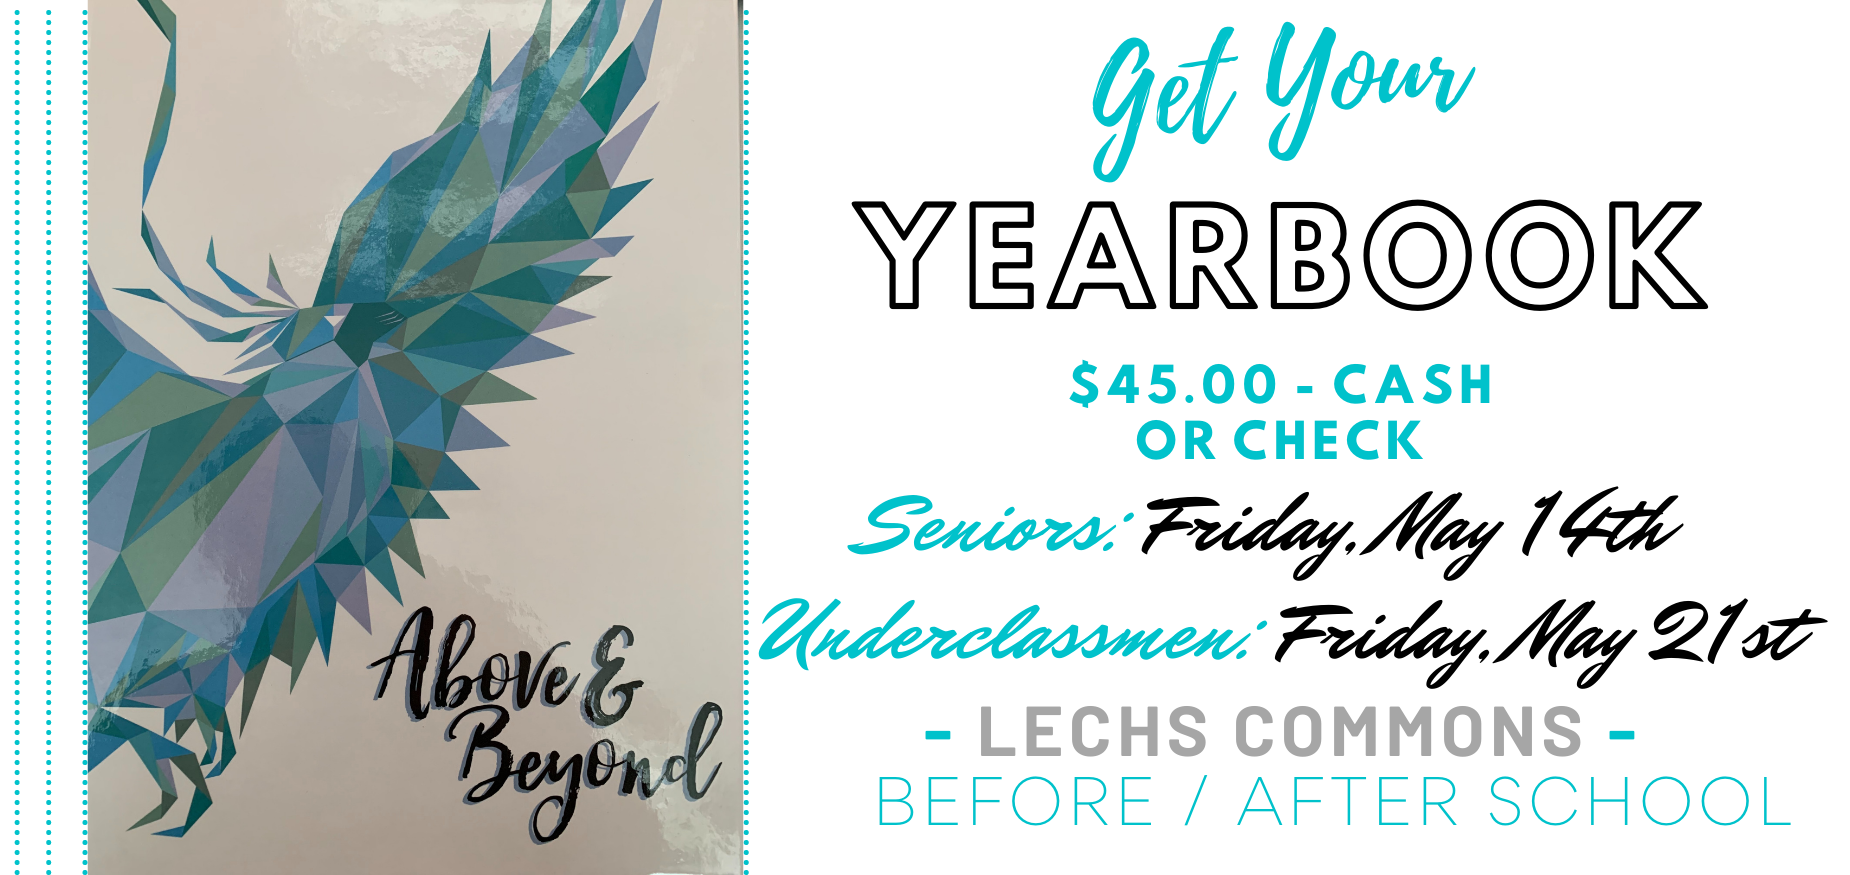 YEARBOOKS $45 Cash or Check, Seniors May 14th, Underclassmen May 21st, LECHS Commons Before / After School